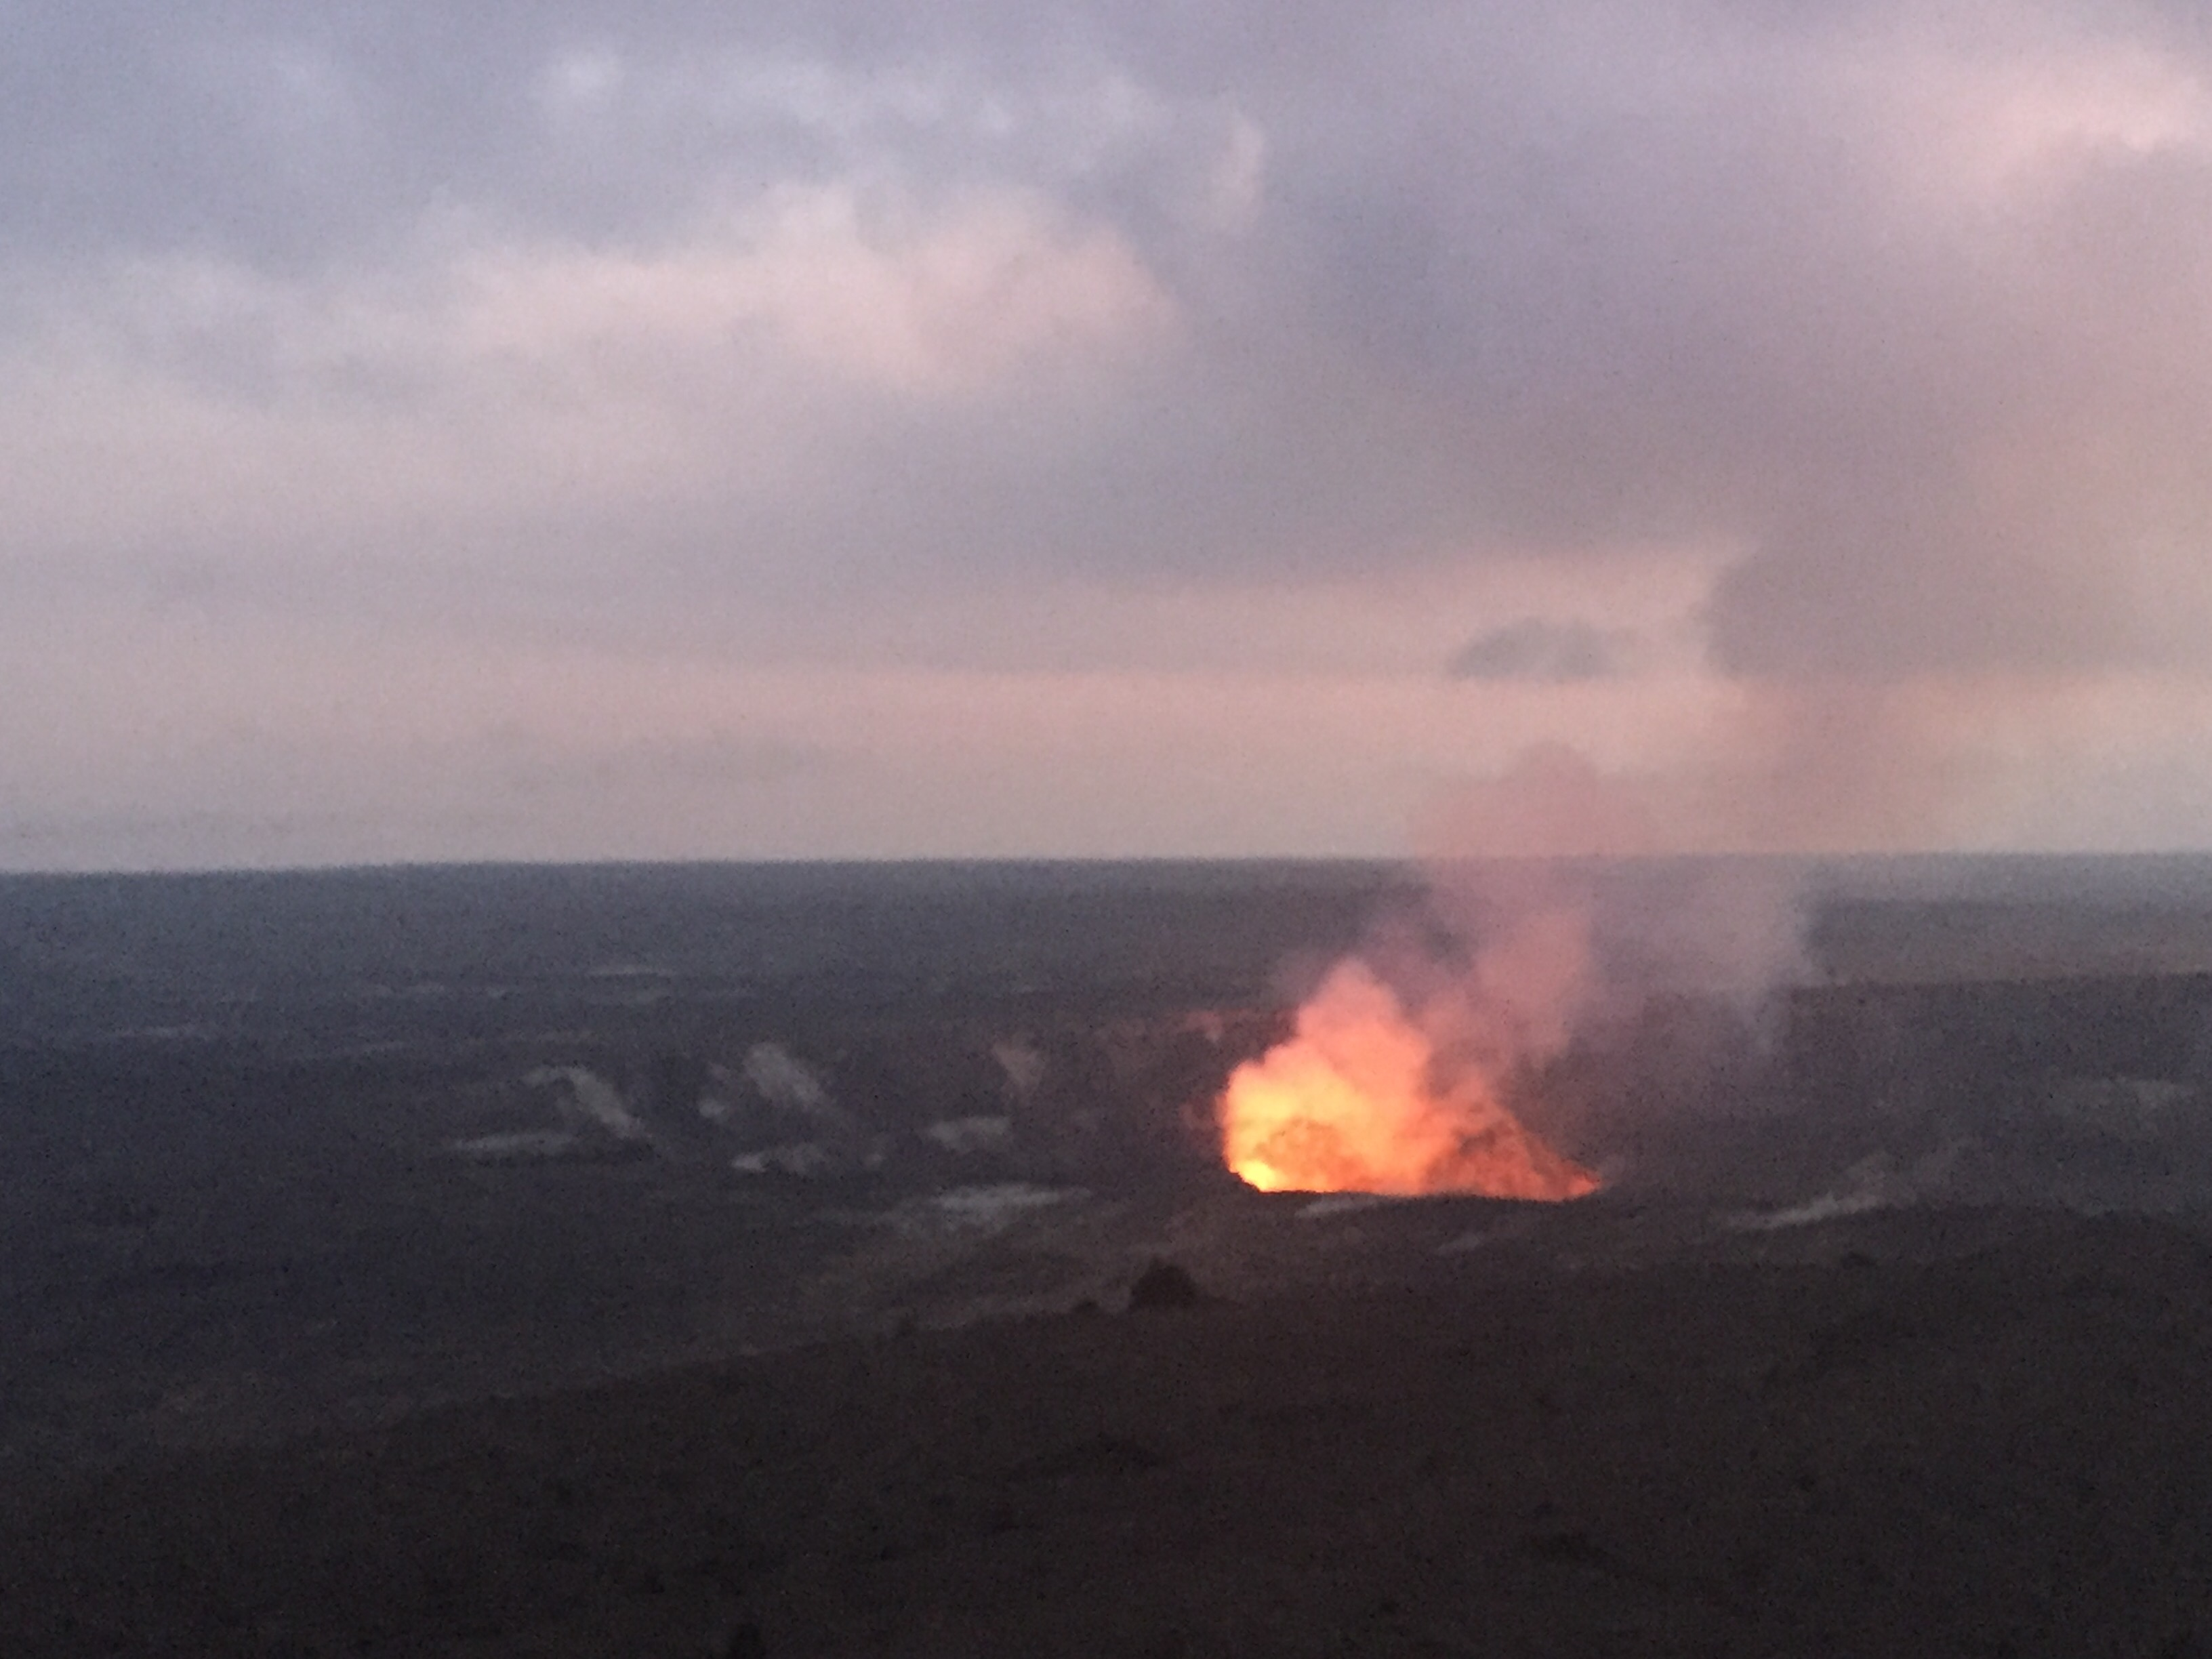 HAWAI'I VOLCANOES NATIONAL PARK: Melting Pot of Legend and Science